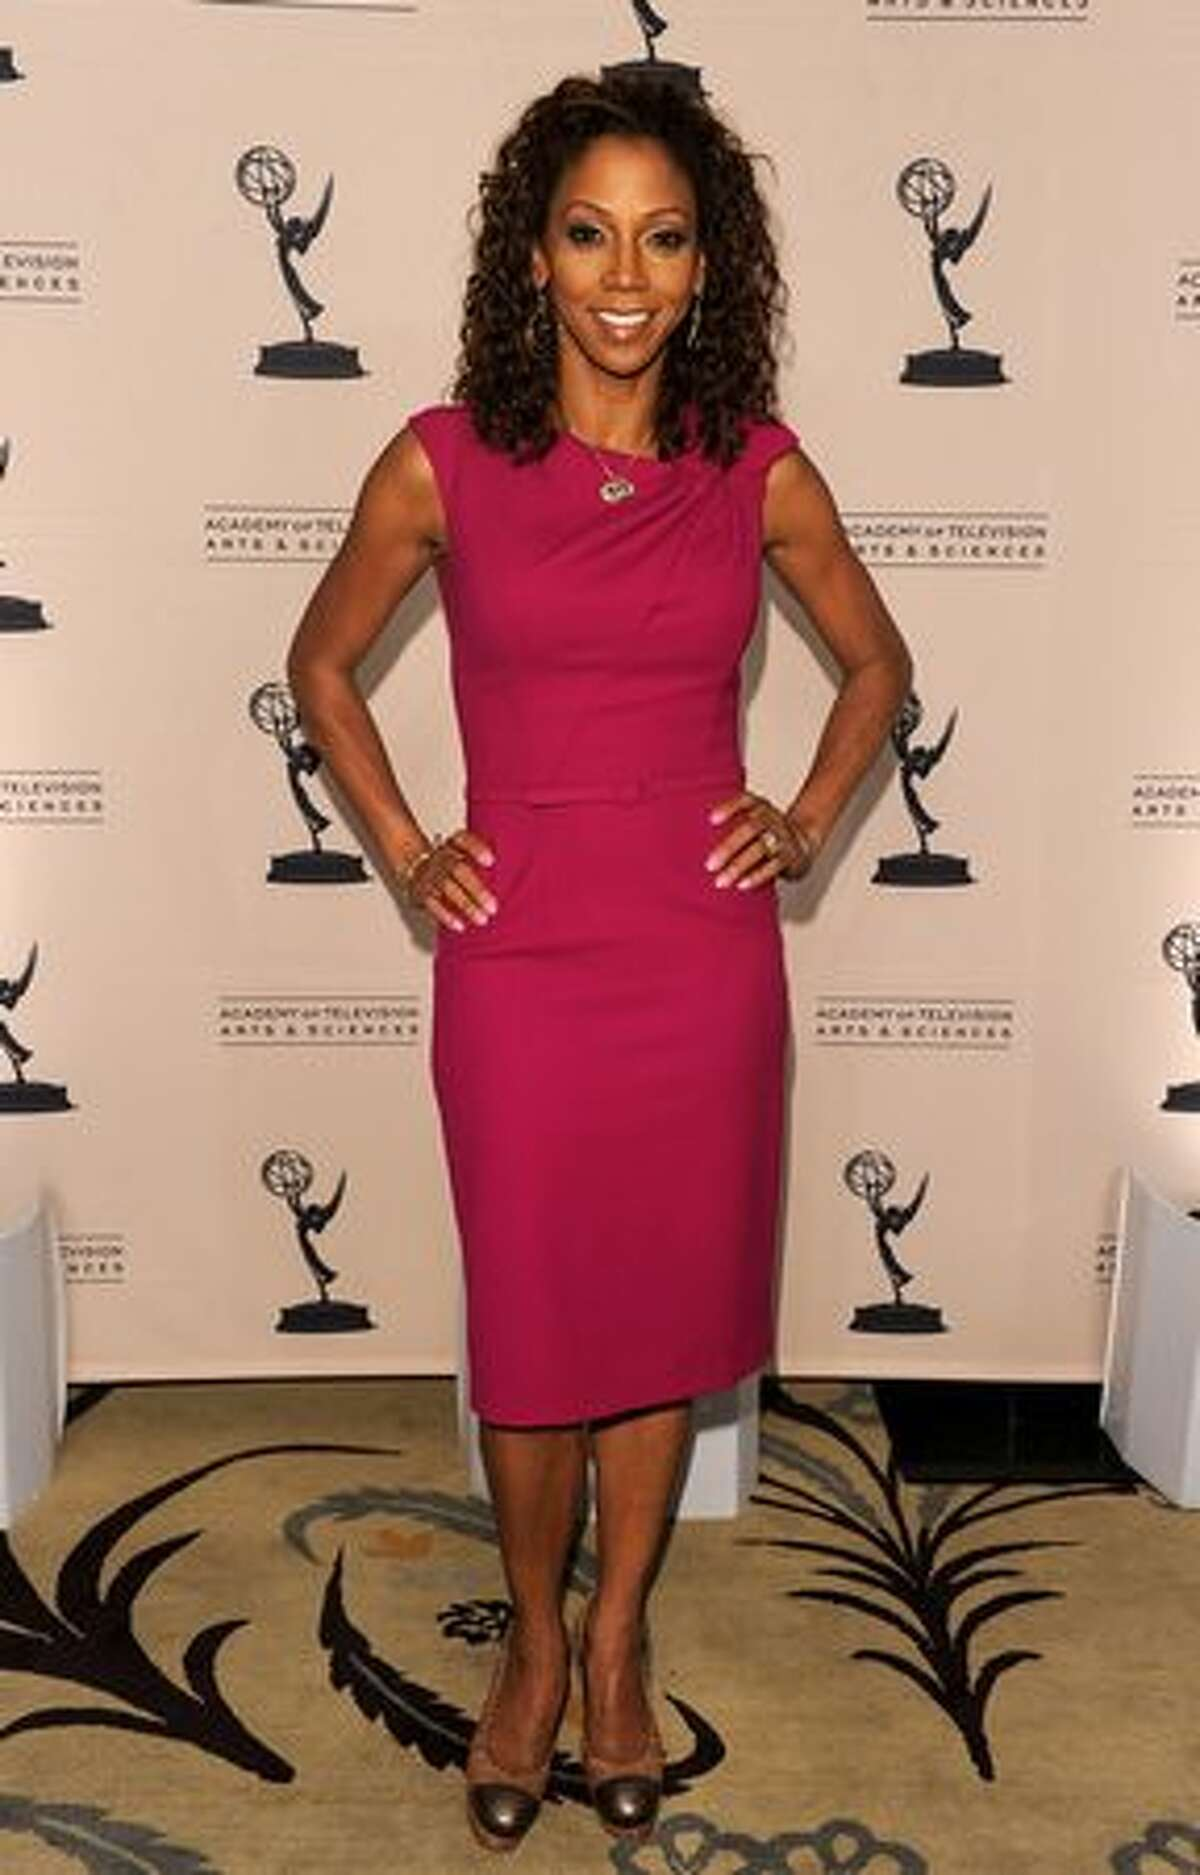 Actress Holly Robinson Peete arrives at the Academy of Television Arts & Sciences' 3rd Annual Academy Honors at the Beverly Hills Hotel on May 5, 2010 in Beverly Hills, California.